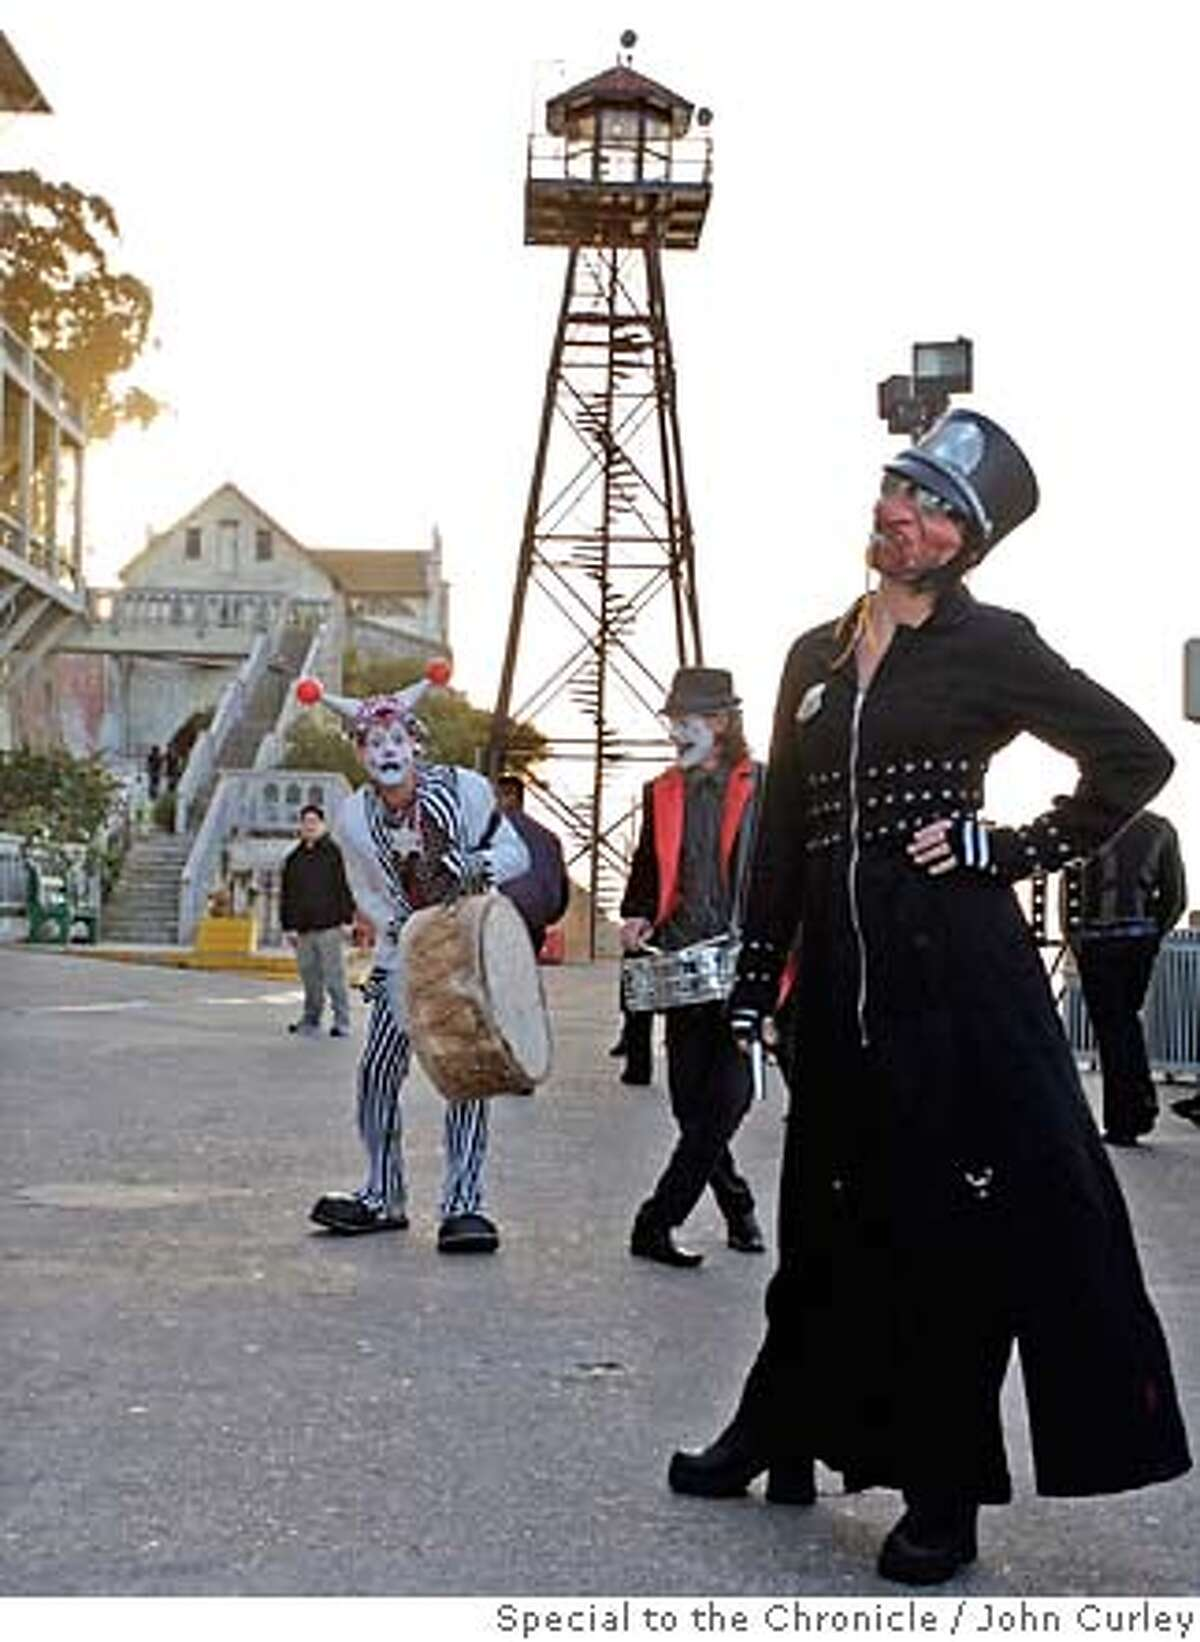 Members of the Vau de Vire Society and Gooferman troupes greeted guests to Alcatraz during